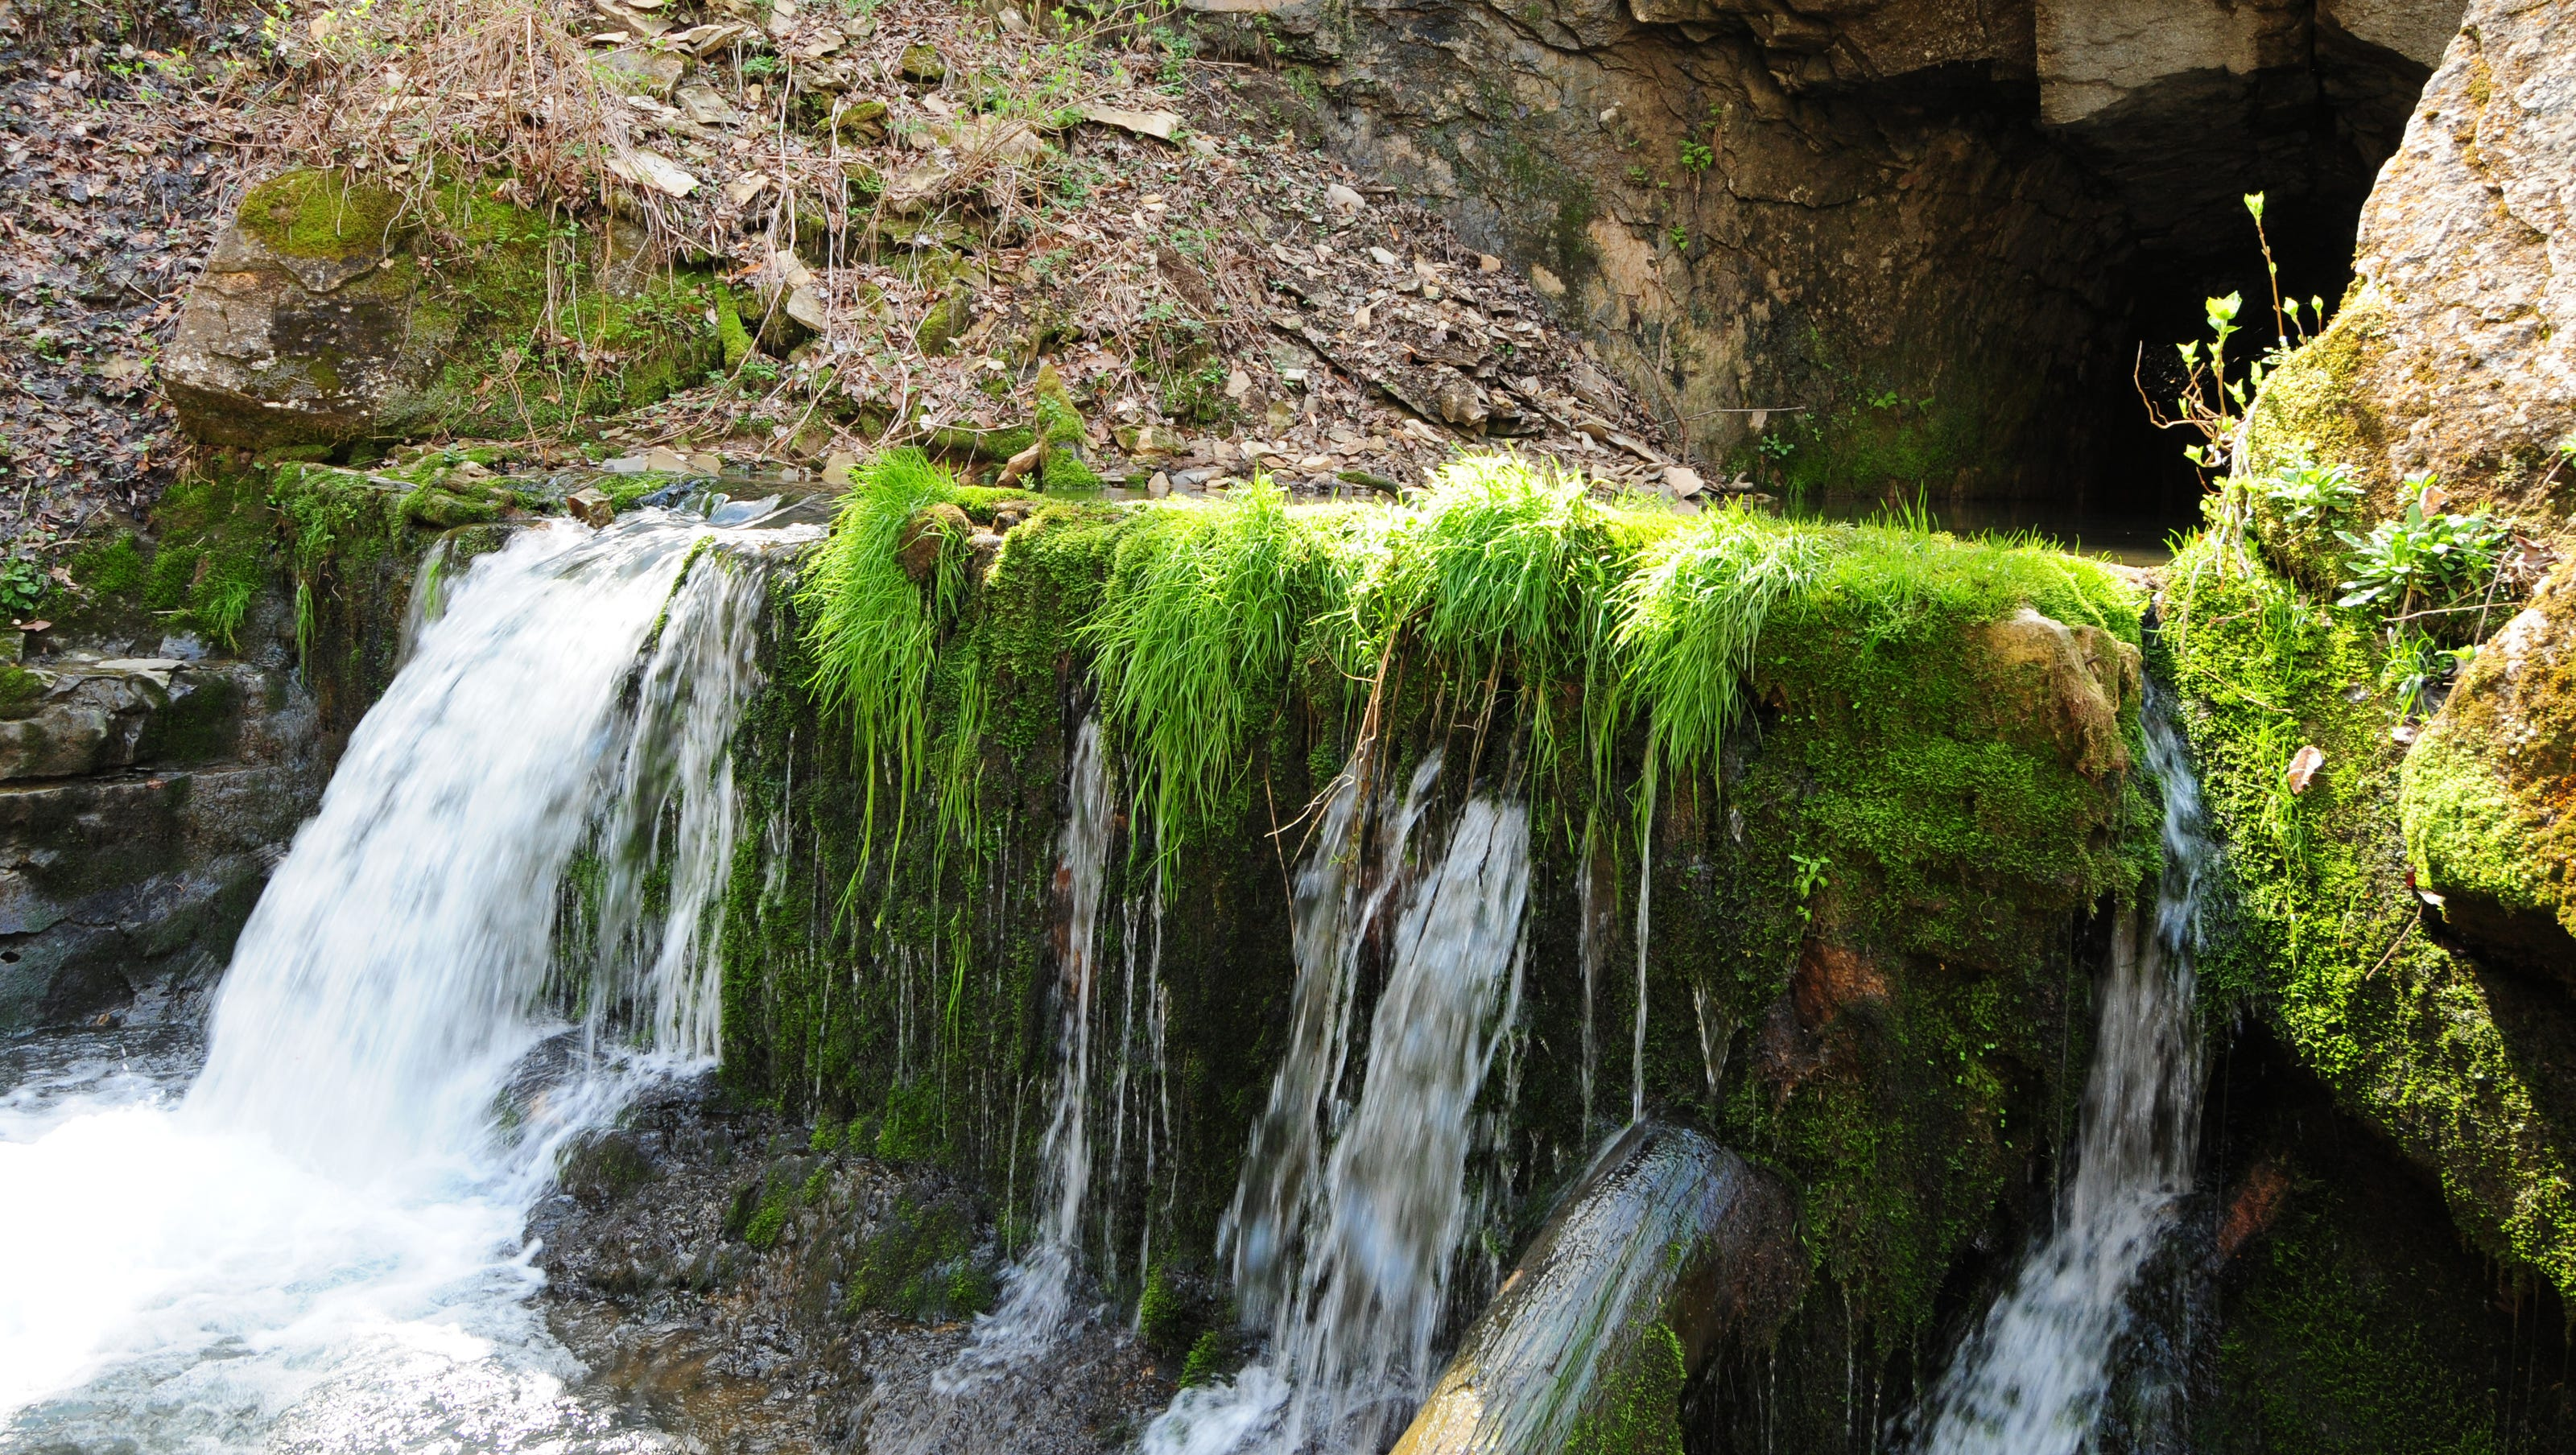 Sullivan Cave Indiana Map.Indiana Waterfalls 22 Locations For An Outdoor Adventure